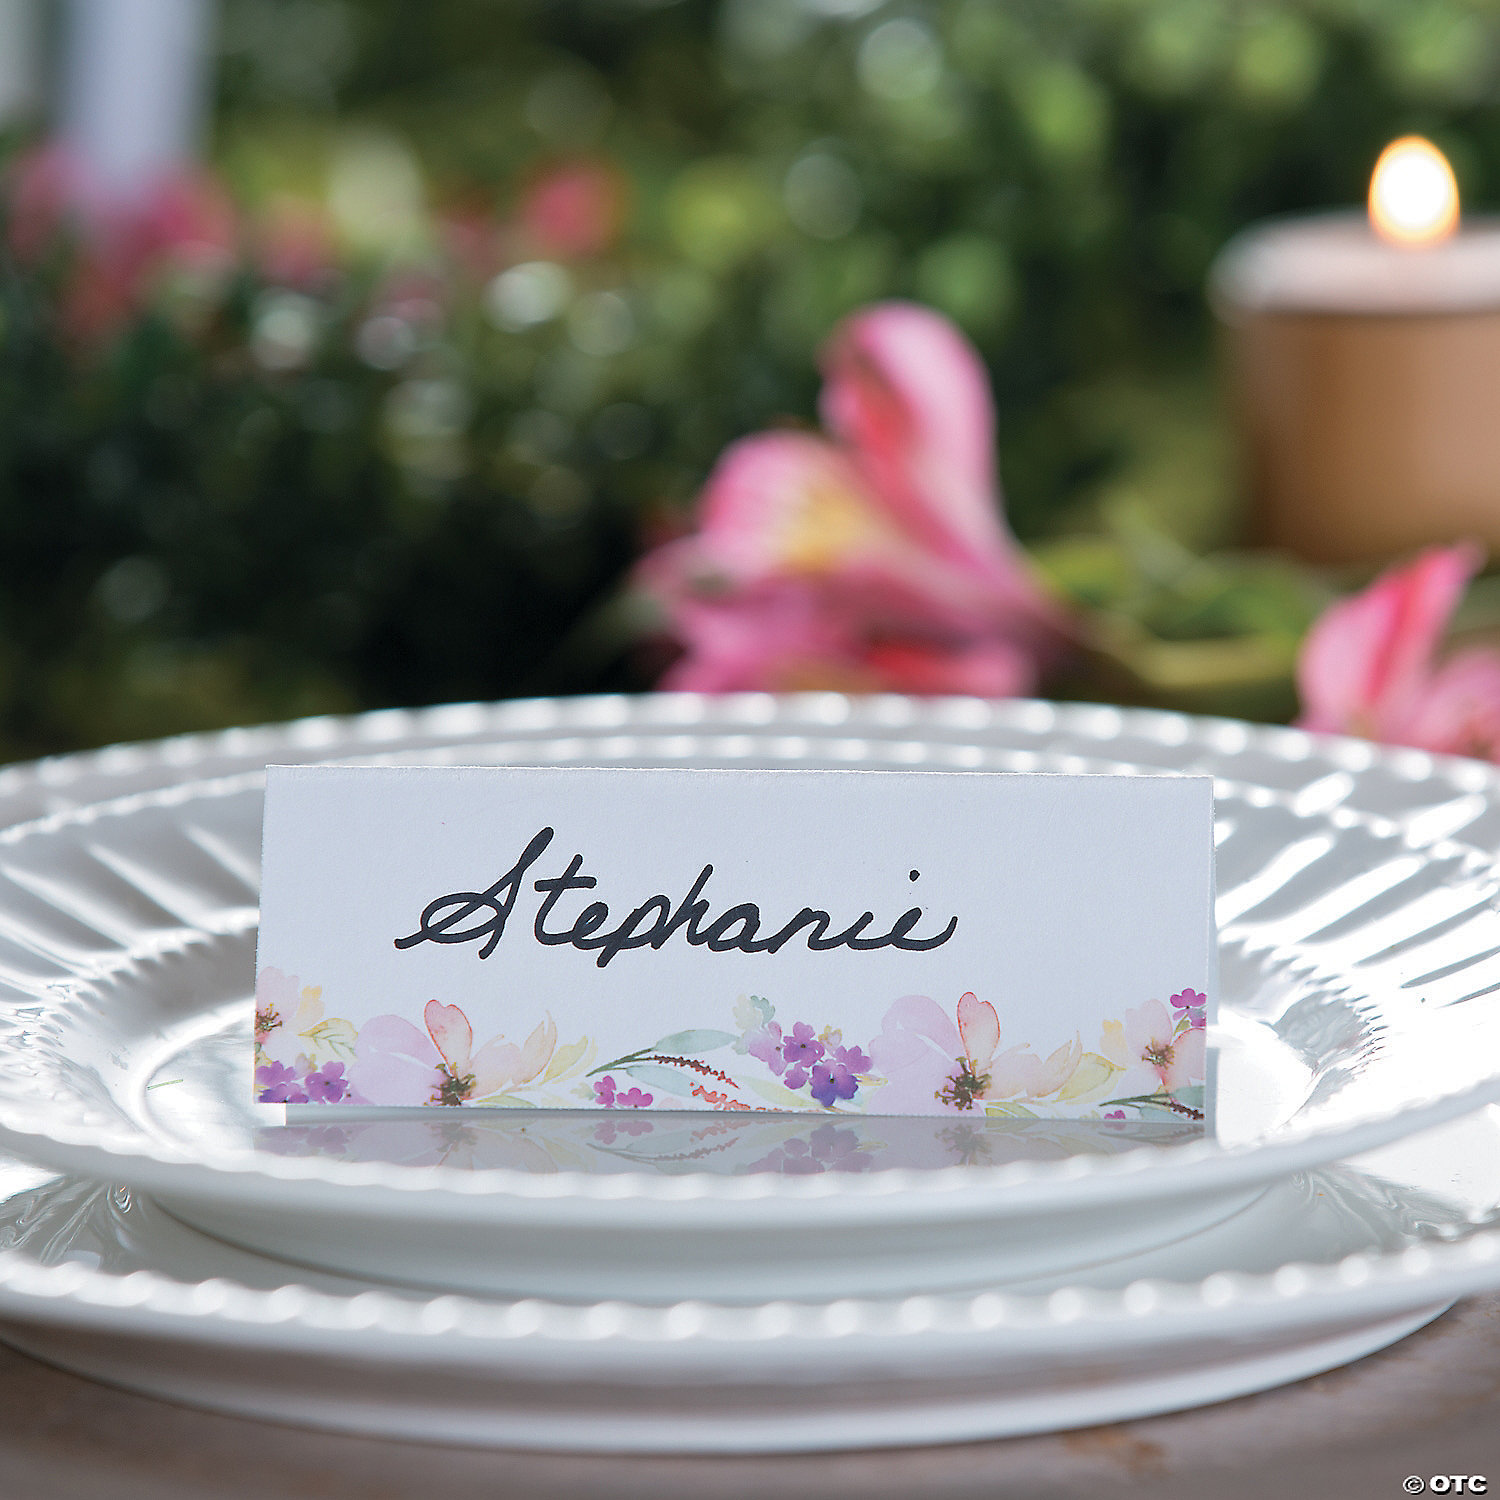 8 Personalized Place Cards Tea Party Place Cards Easter Place Cards Garden Party Place Cards Spring Place Cards